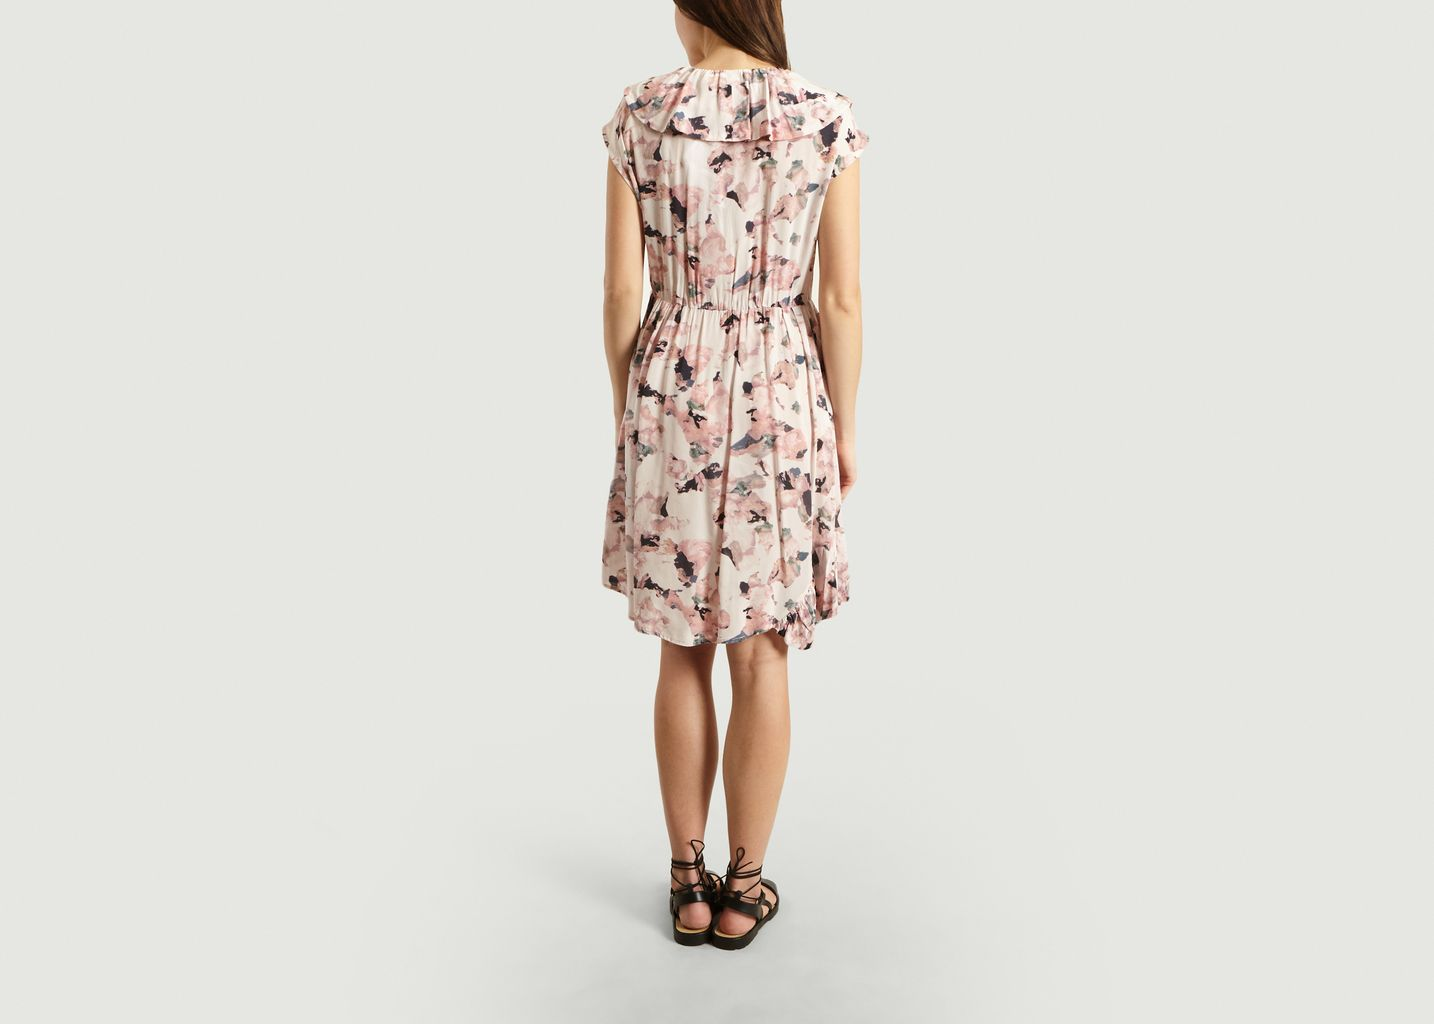 Robe Print Fleuri Lovely - IRO